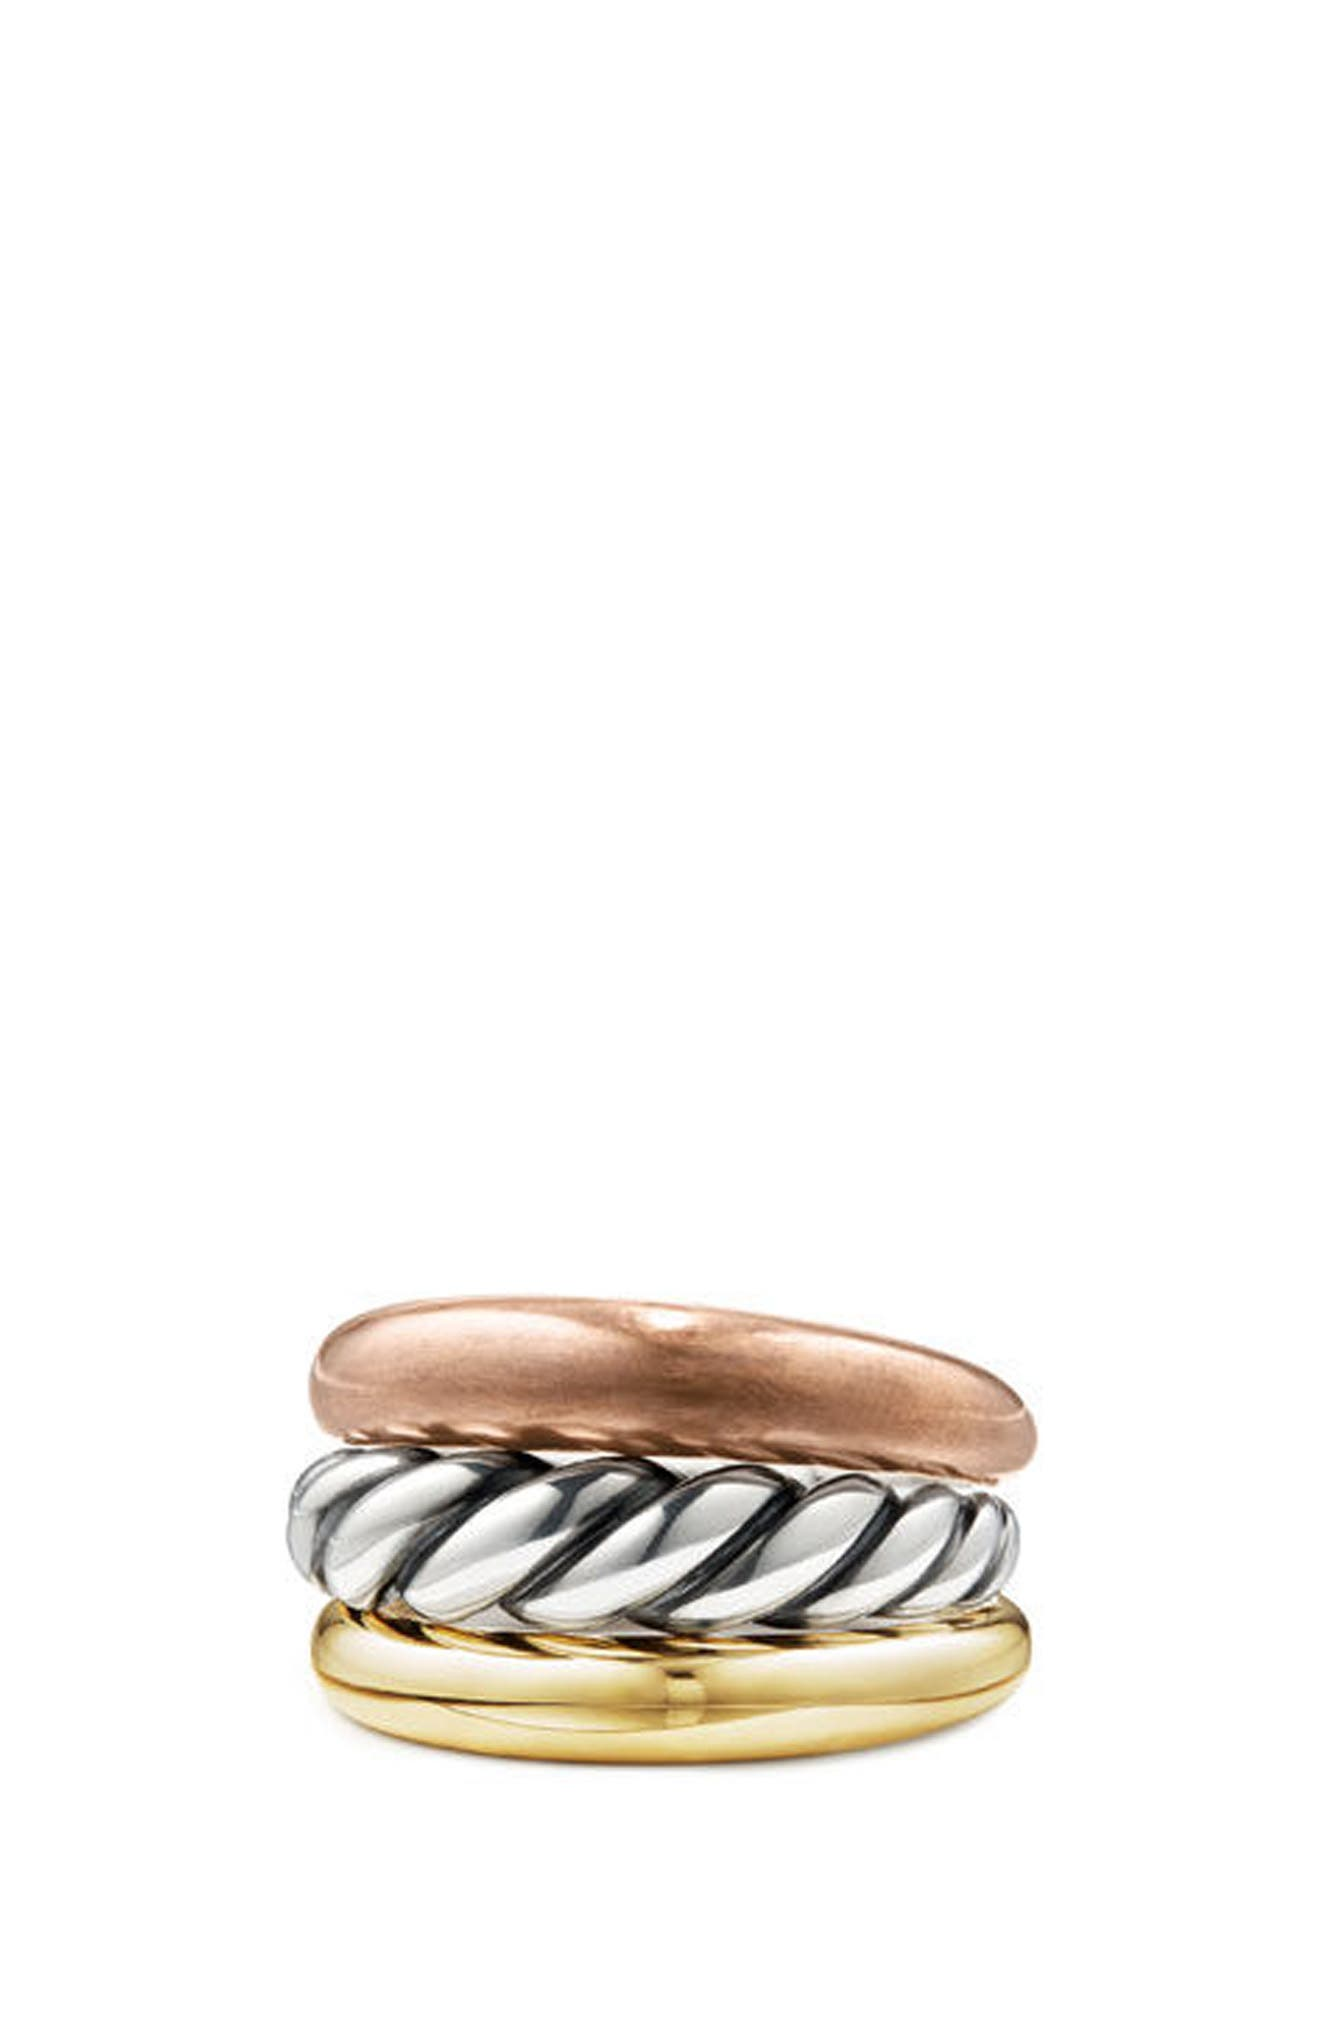 Pure Form Mixed Metal Three-Row Ring with Bronze, Silver & Brass,                             Main thumbnail 1, color,                             040